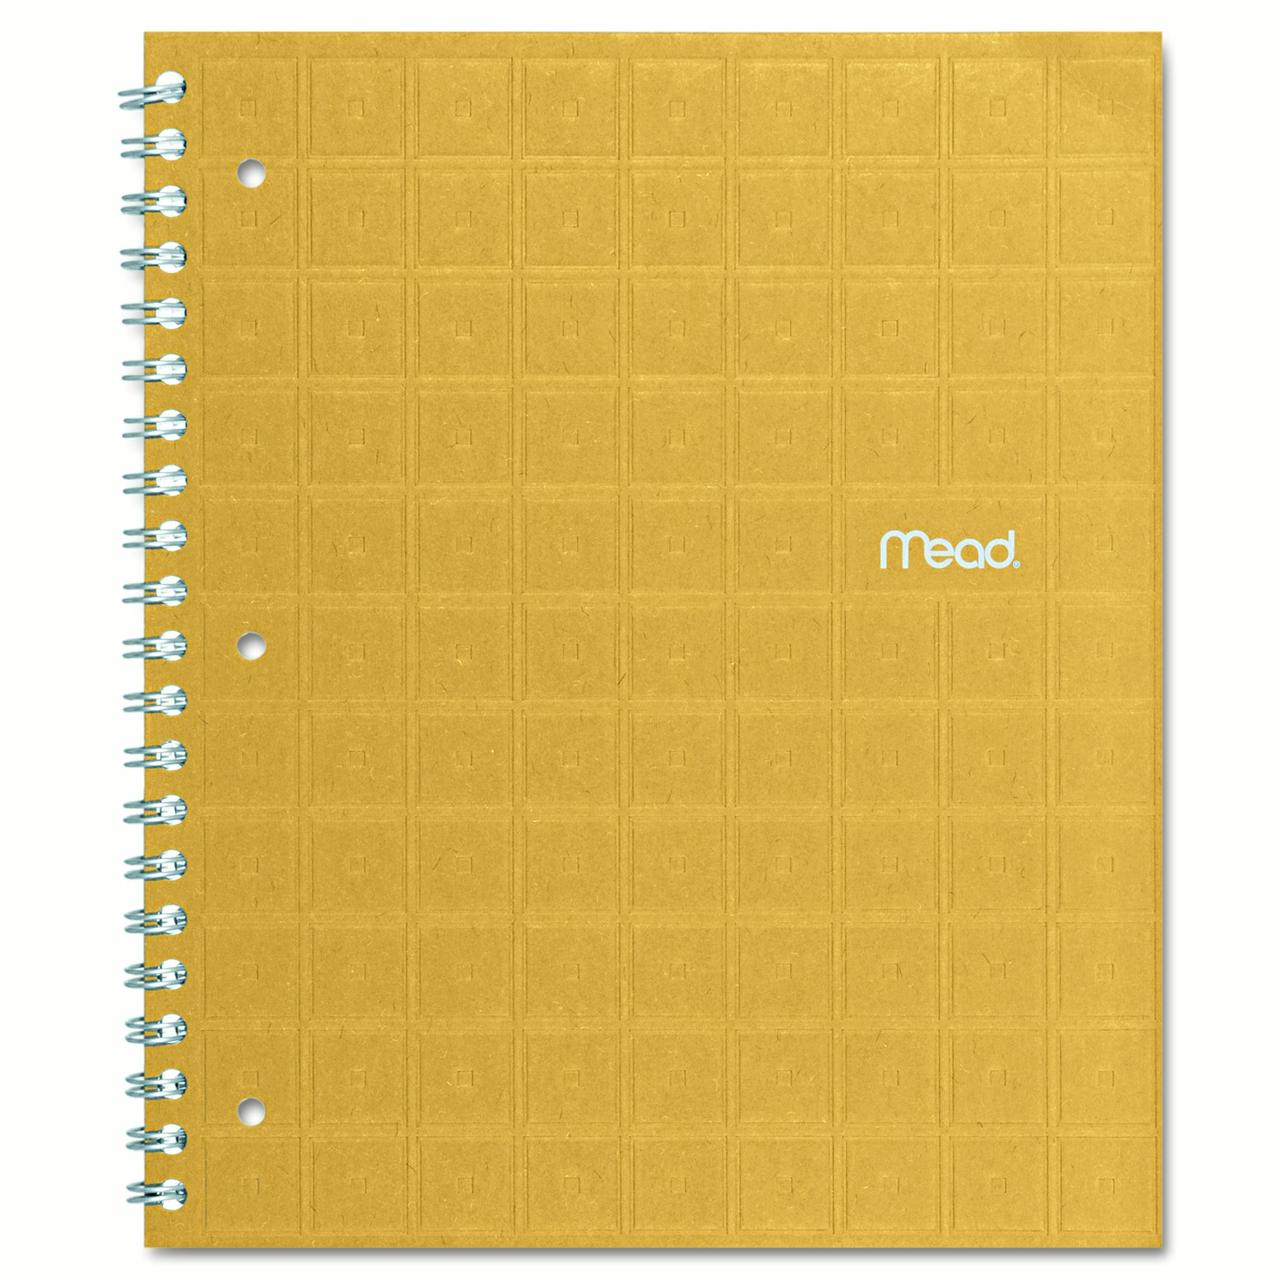 Mead Recycled Notebook, College Ruled, 8 1/2 x 11, 80 Sheets, Perforated, Assorted